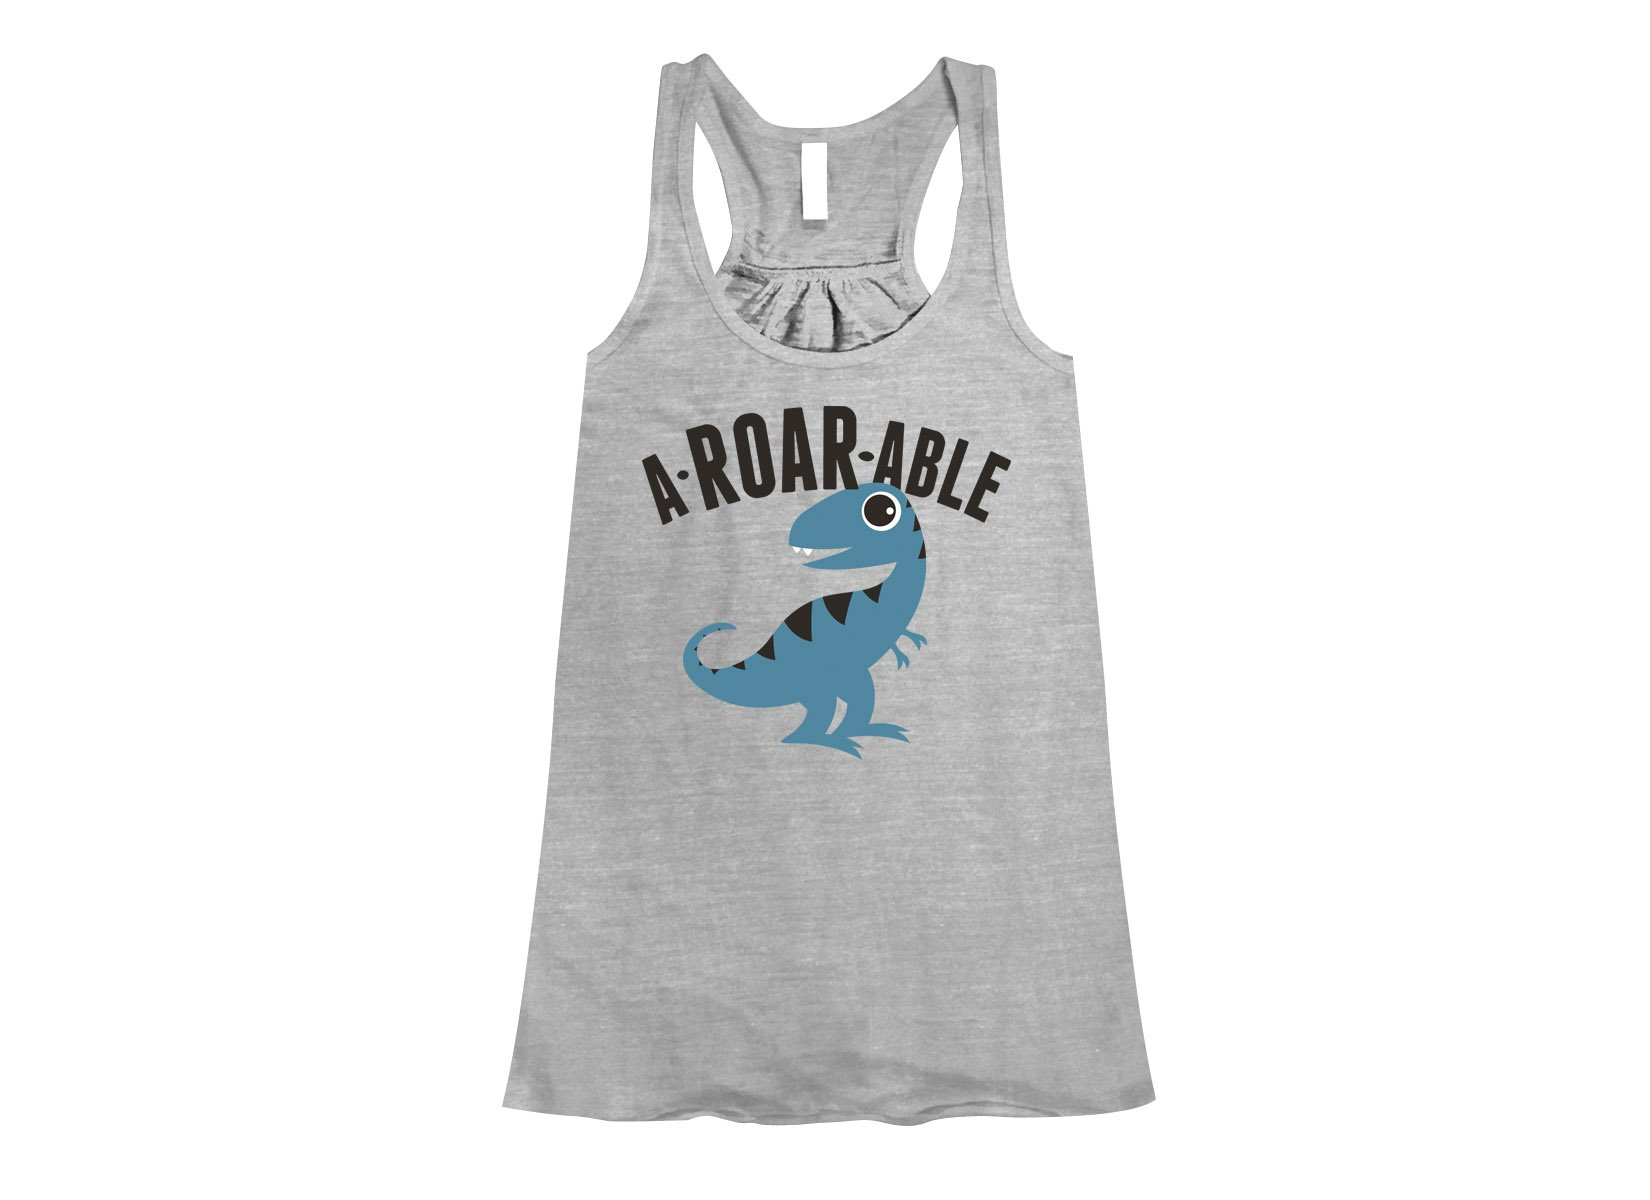 A-Roar-Able on Womens Tanks T-Shirt